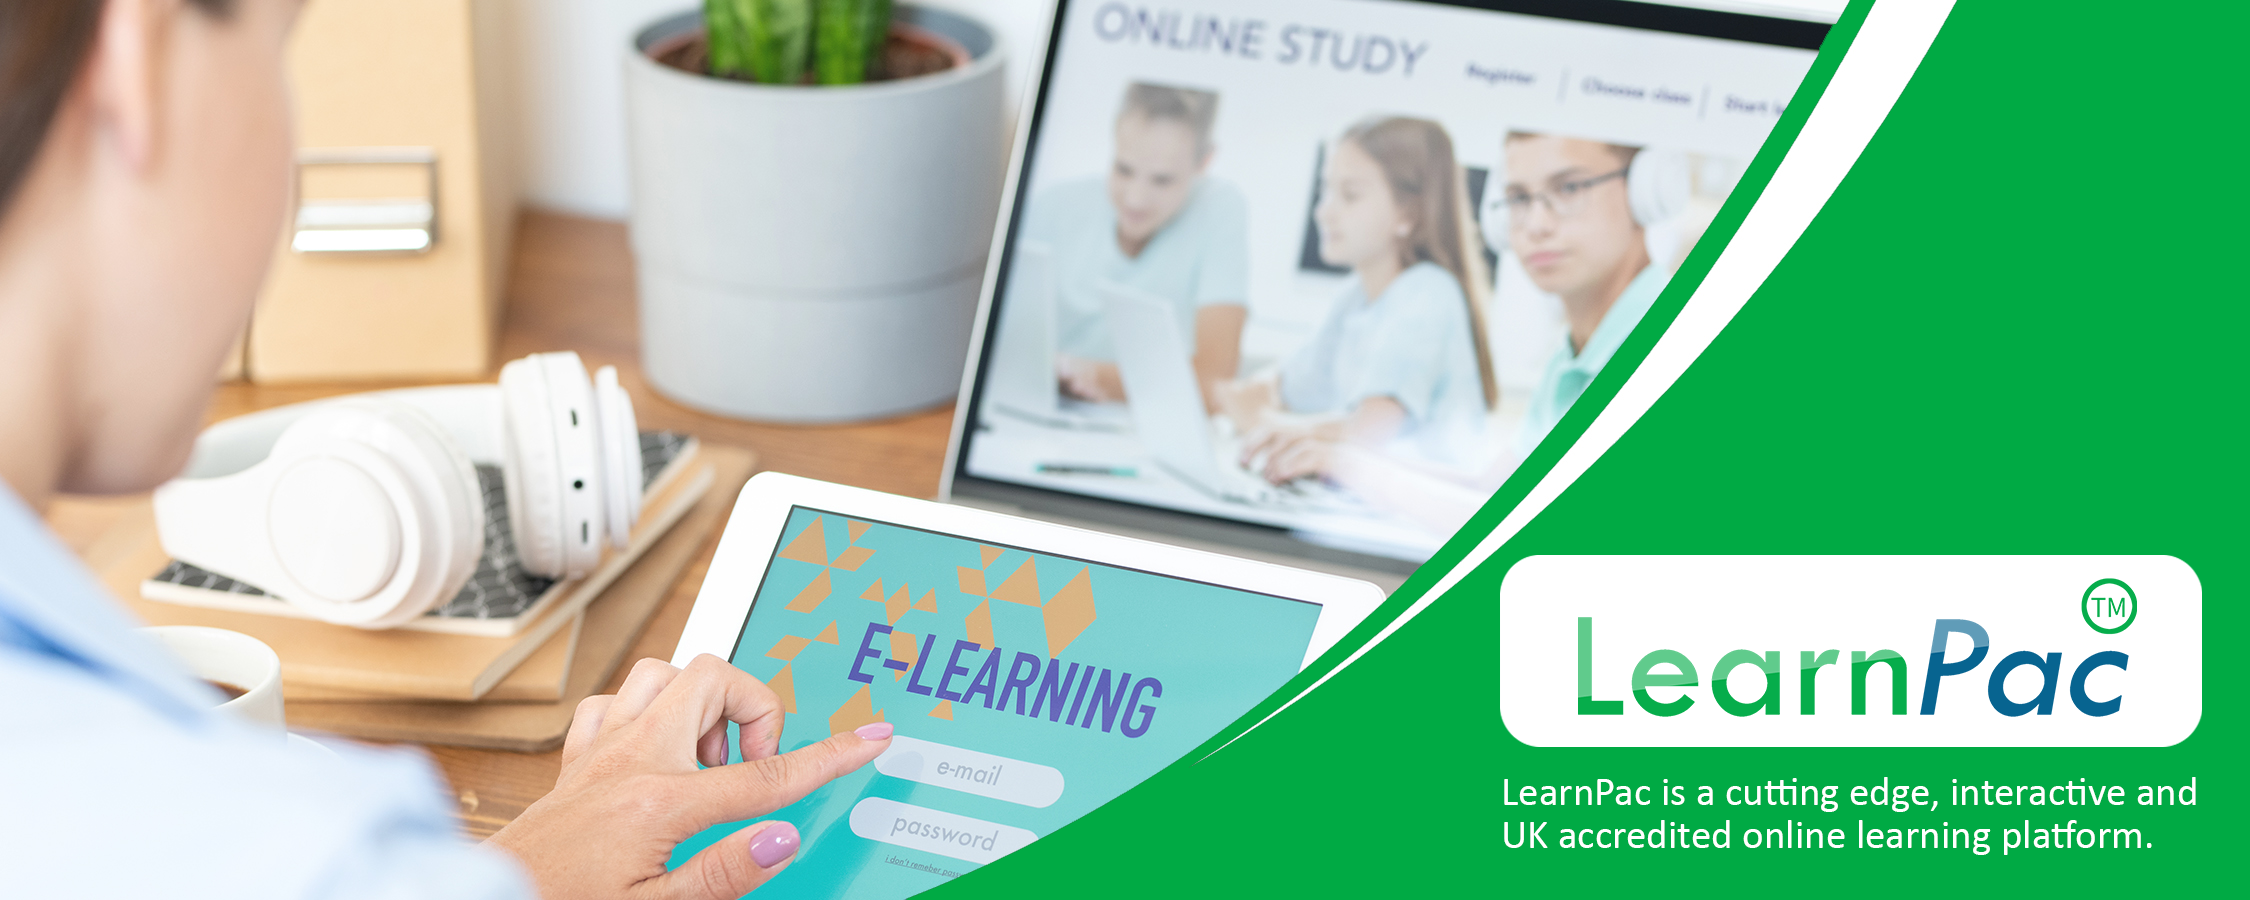 Recruitment - eLearning Course - CPD Certified - LearnPac Systems UK -